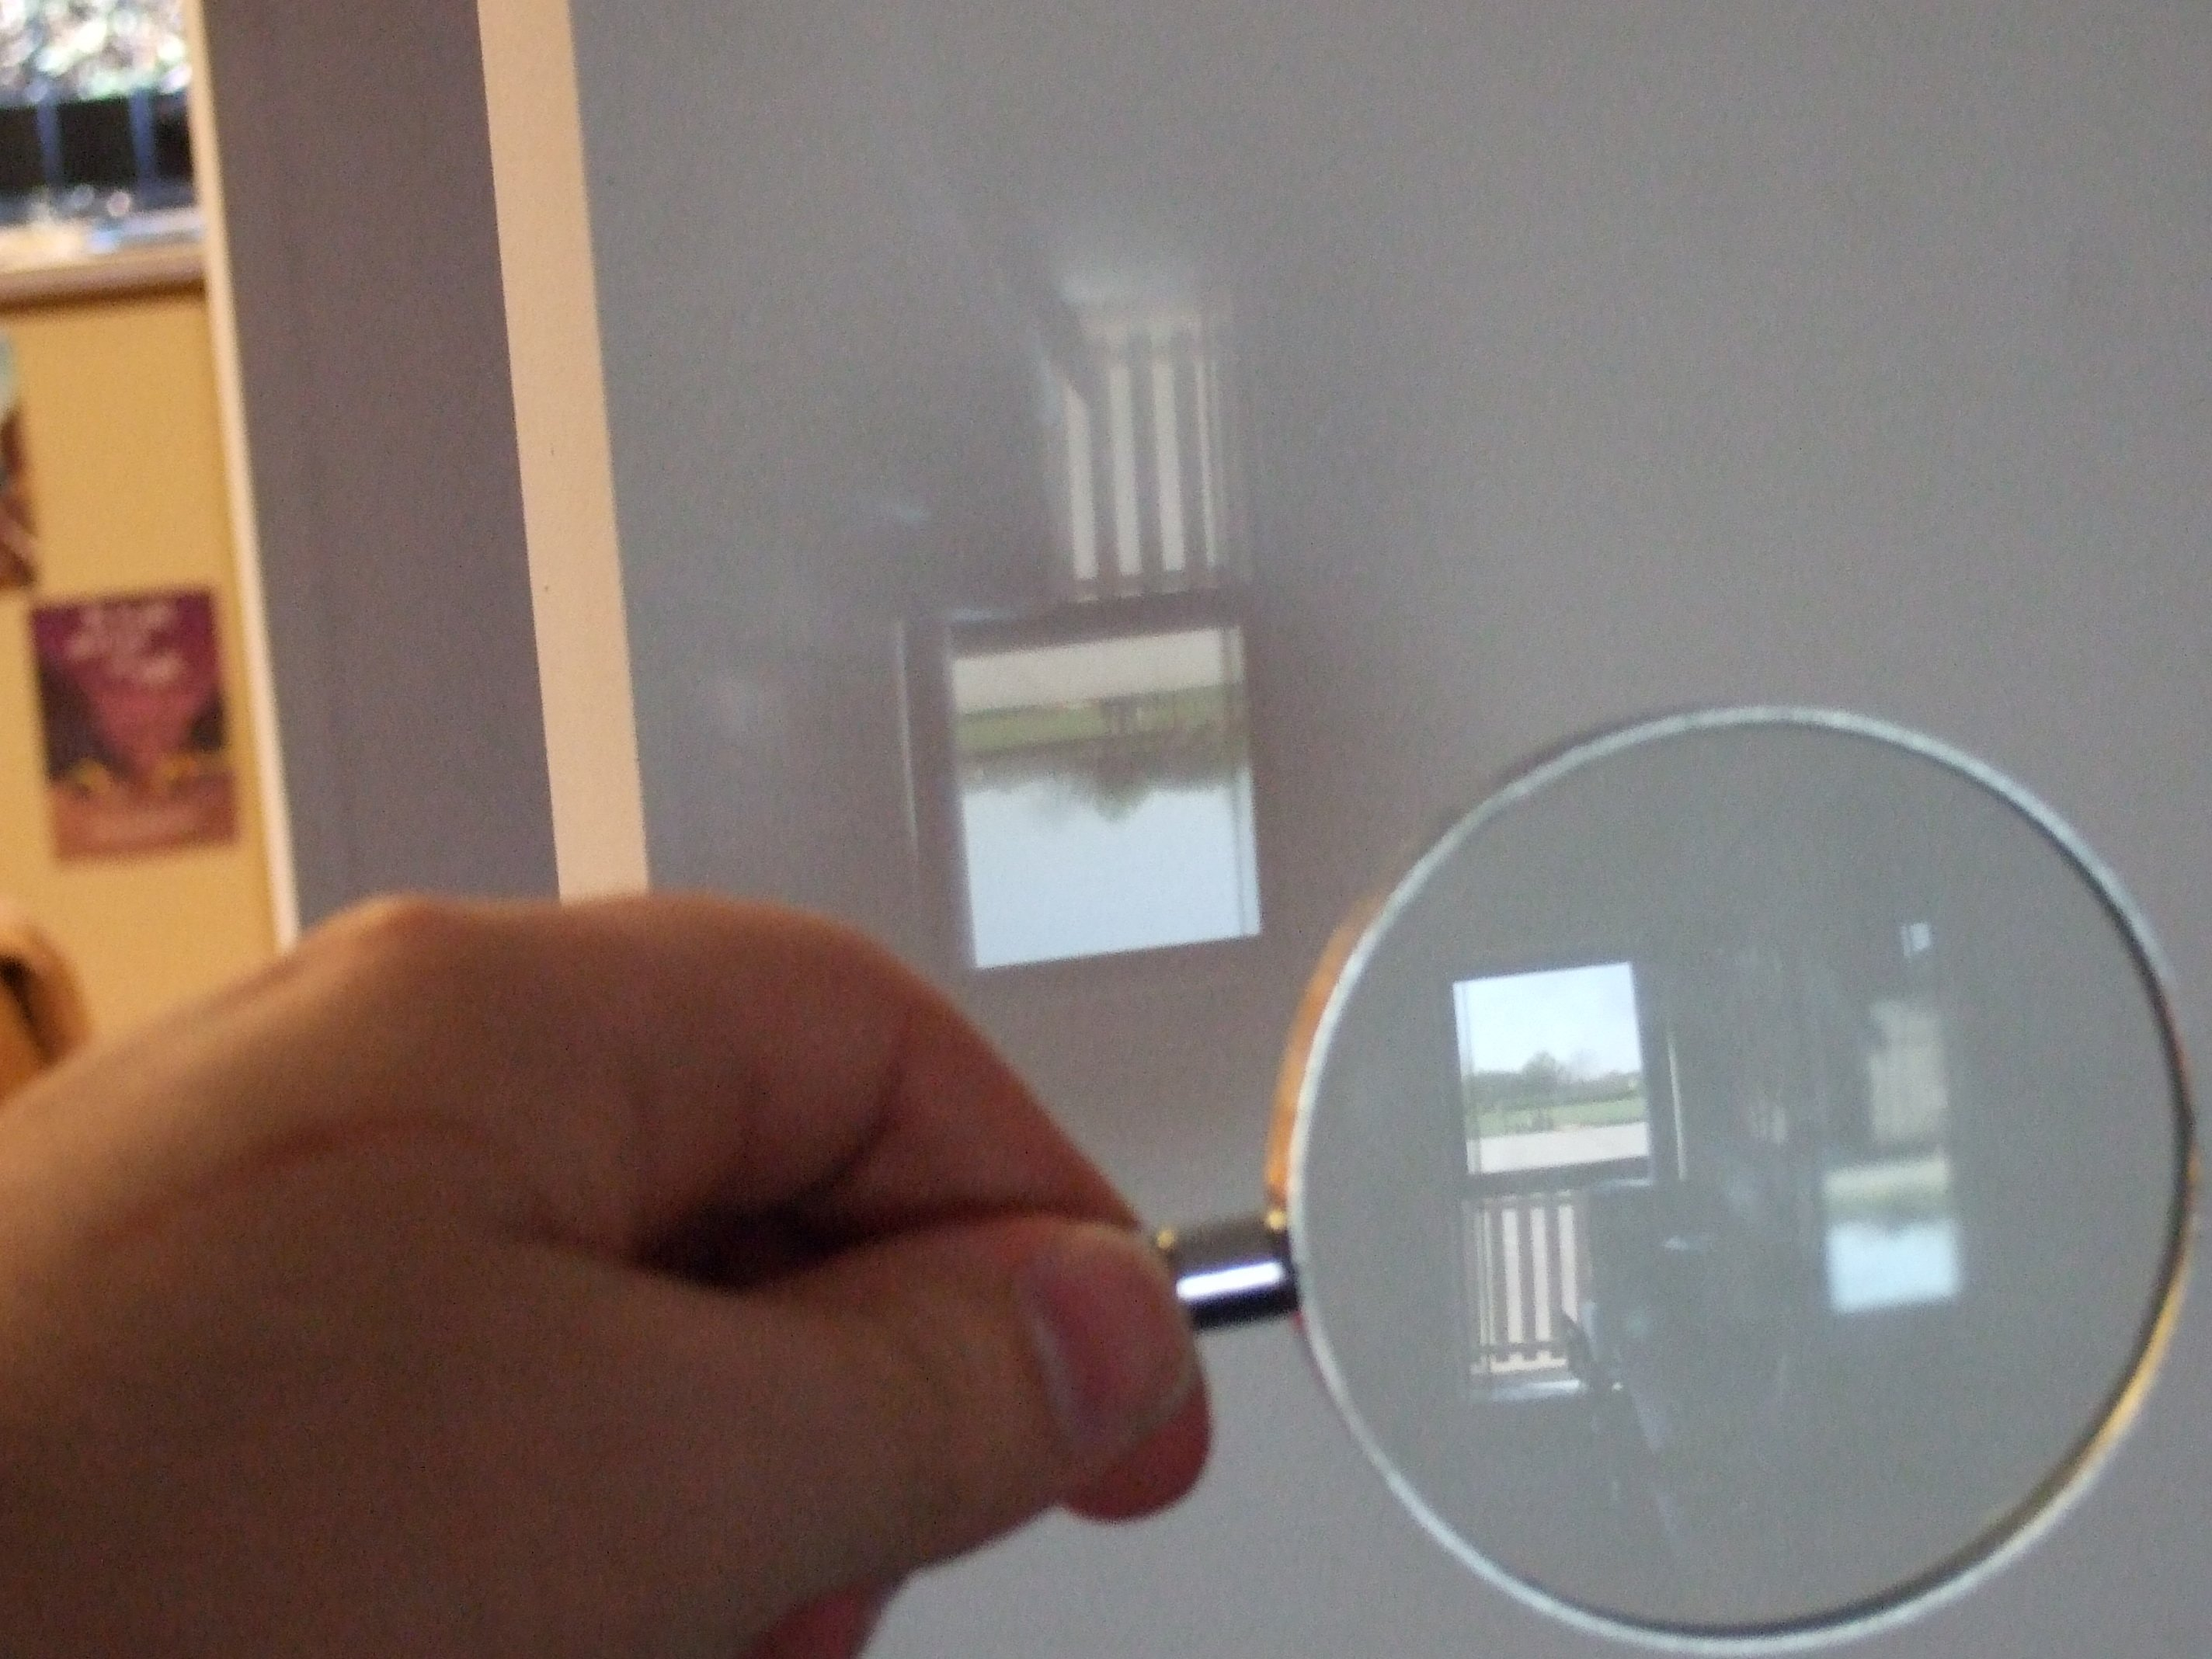 Image from a Magnifying glass